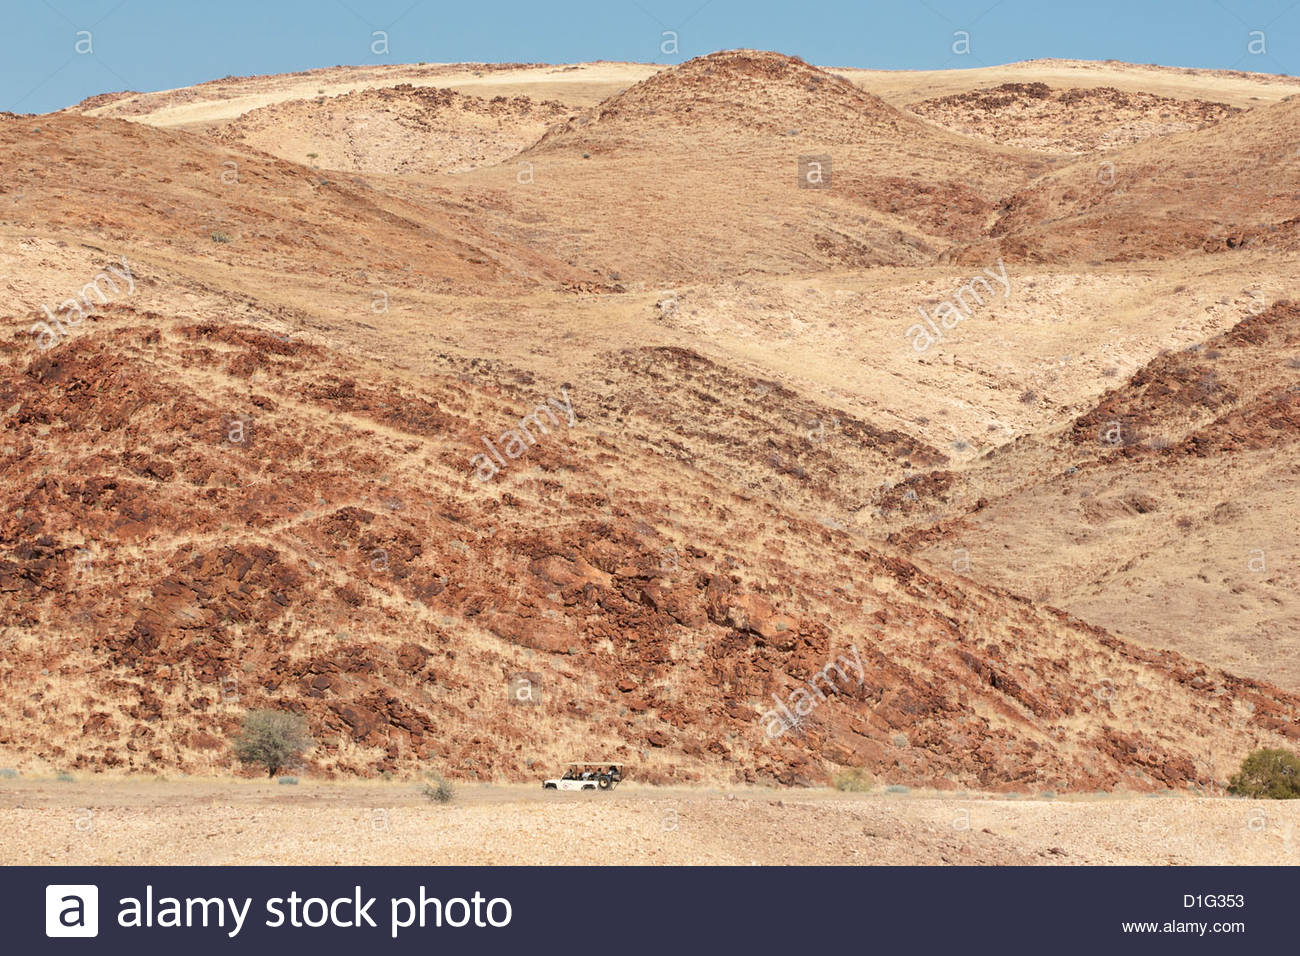 Red rocky landscape with jeep in distance, Purros Conservancy Wilderness, Kaokoland, Namibia, Africa - Stock Image